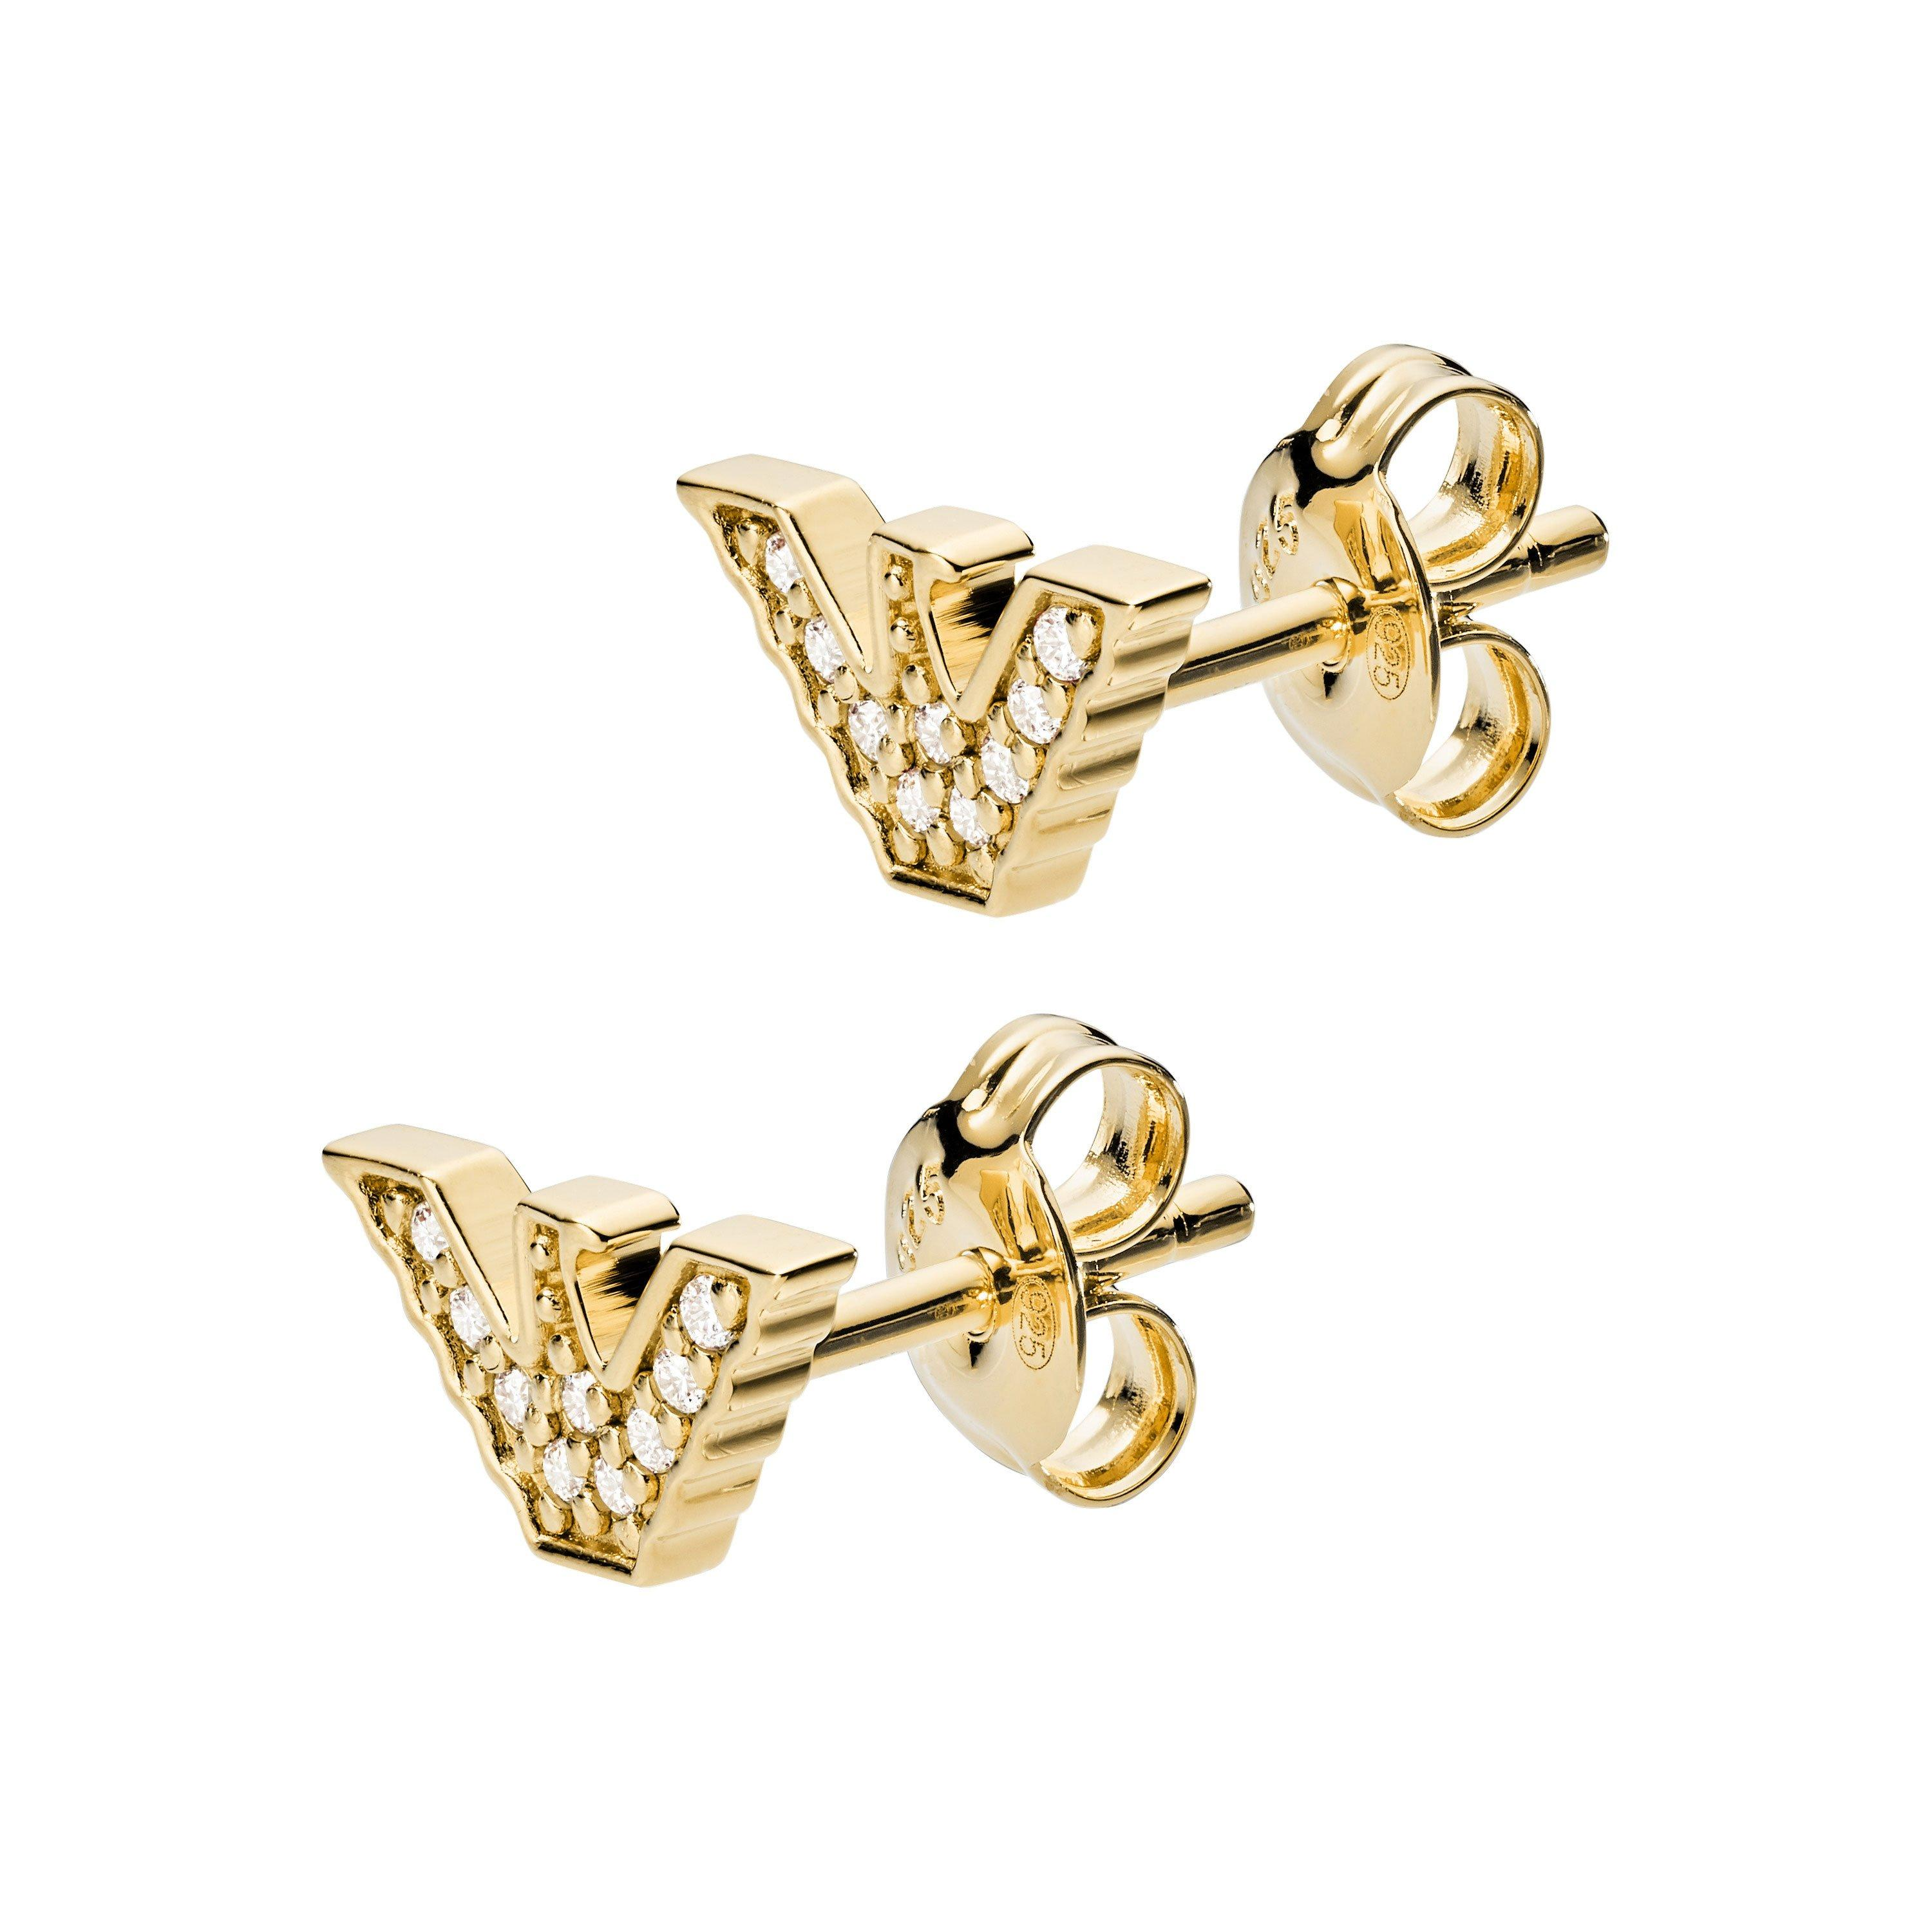 Emporio Armani Silver Gold Plated Stud Earrings